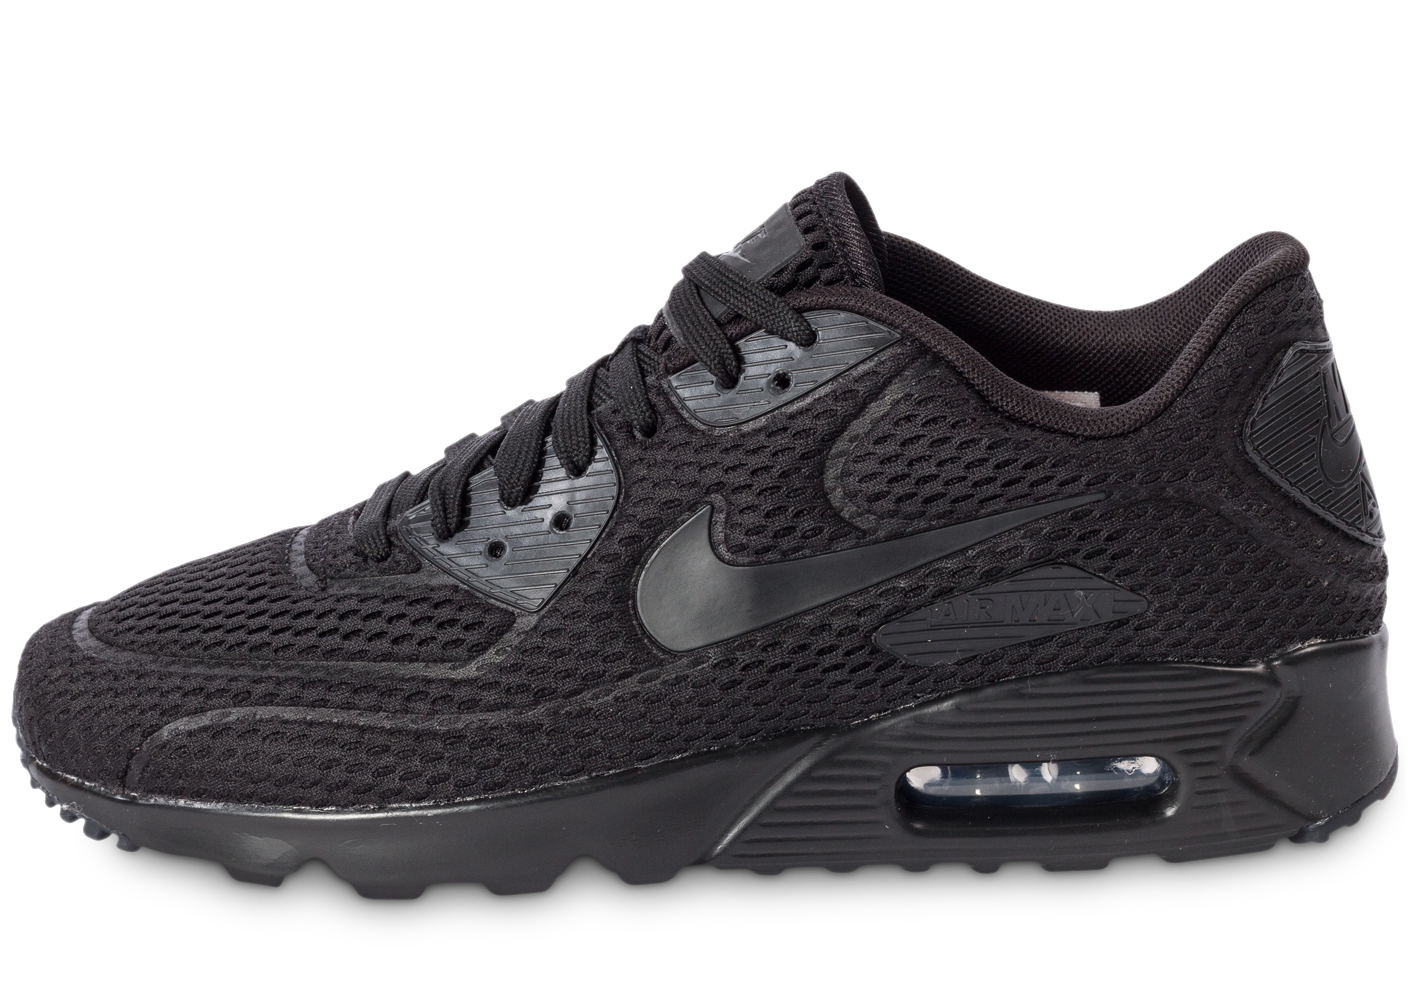 sports shoes ef525 55d05 ... purchase nike air max 90 basketsboot rose argent nike air max 90  basketsboot blanc . a9425